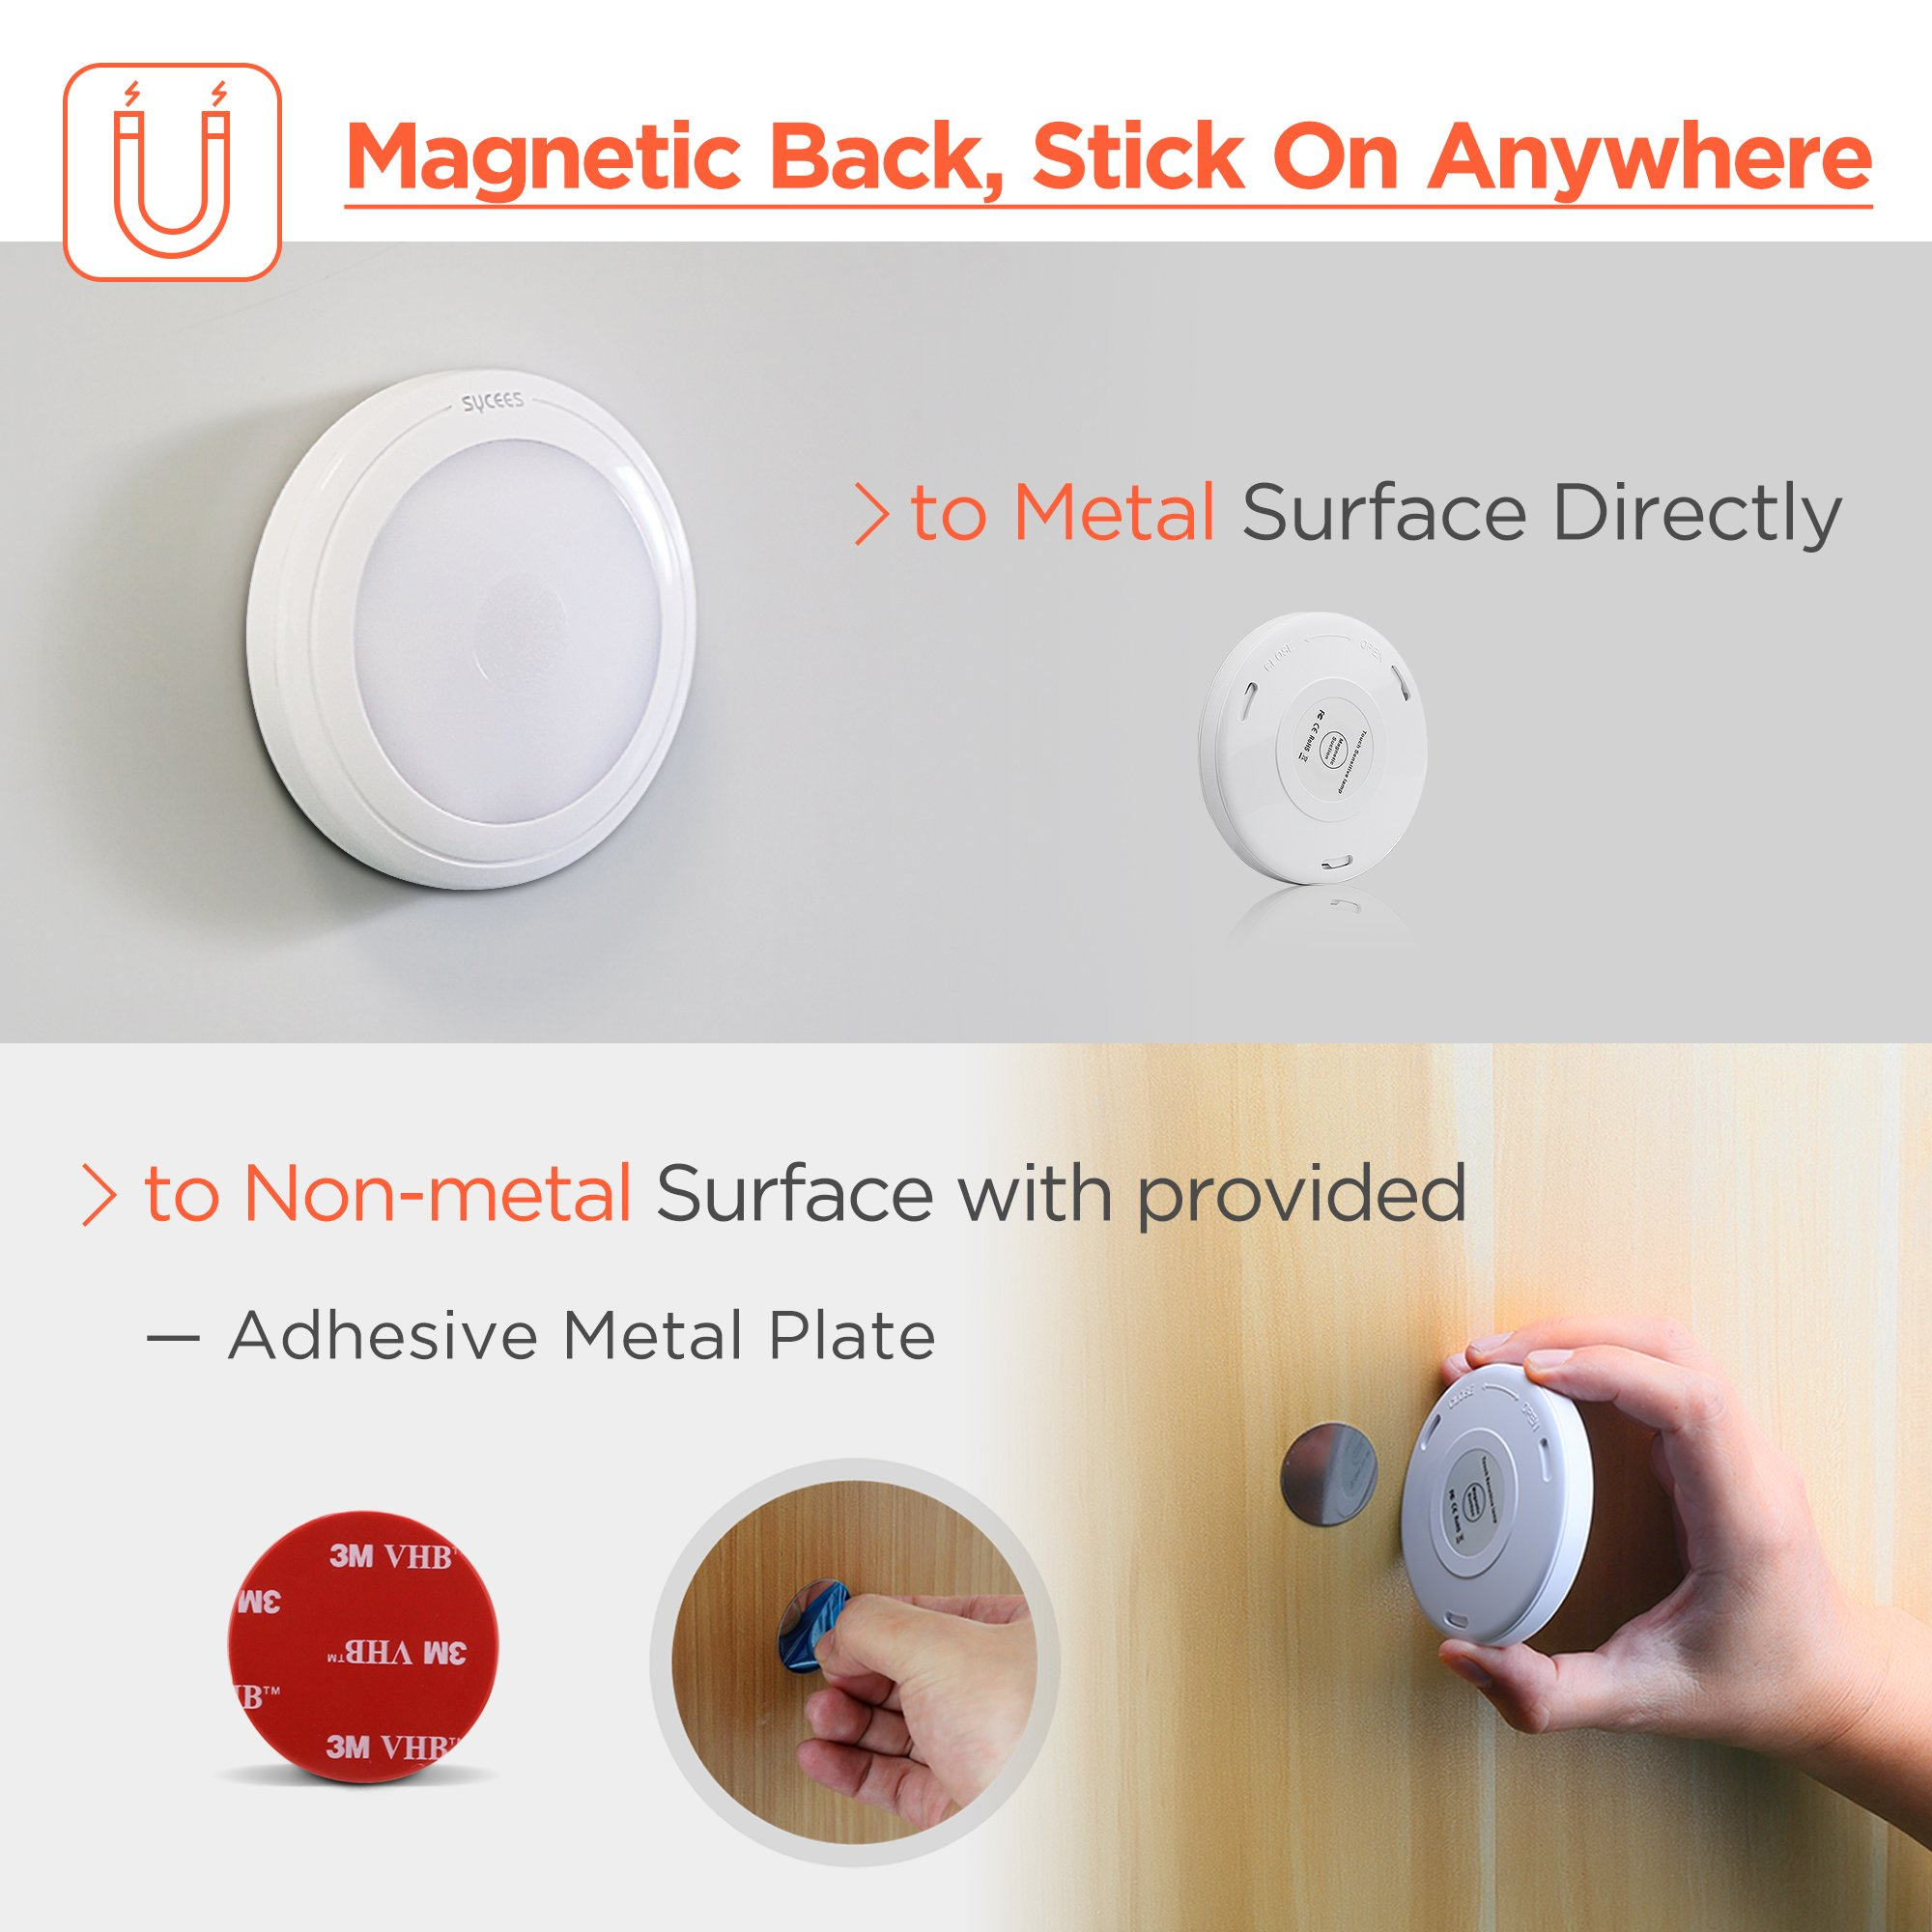 Sycees Touch Activated LED Puck Lights, Dimmable, Battery Operated, Stick on Anywhere, Warm White (2700K), 3-Pack by SYCEES (Image #4)